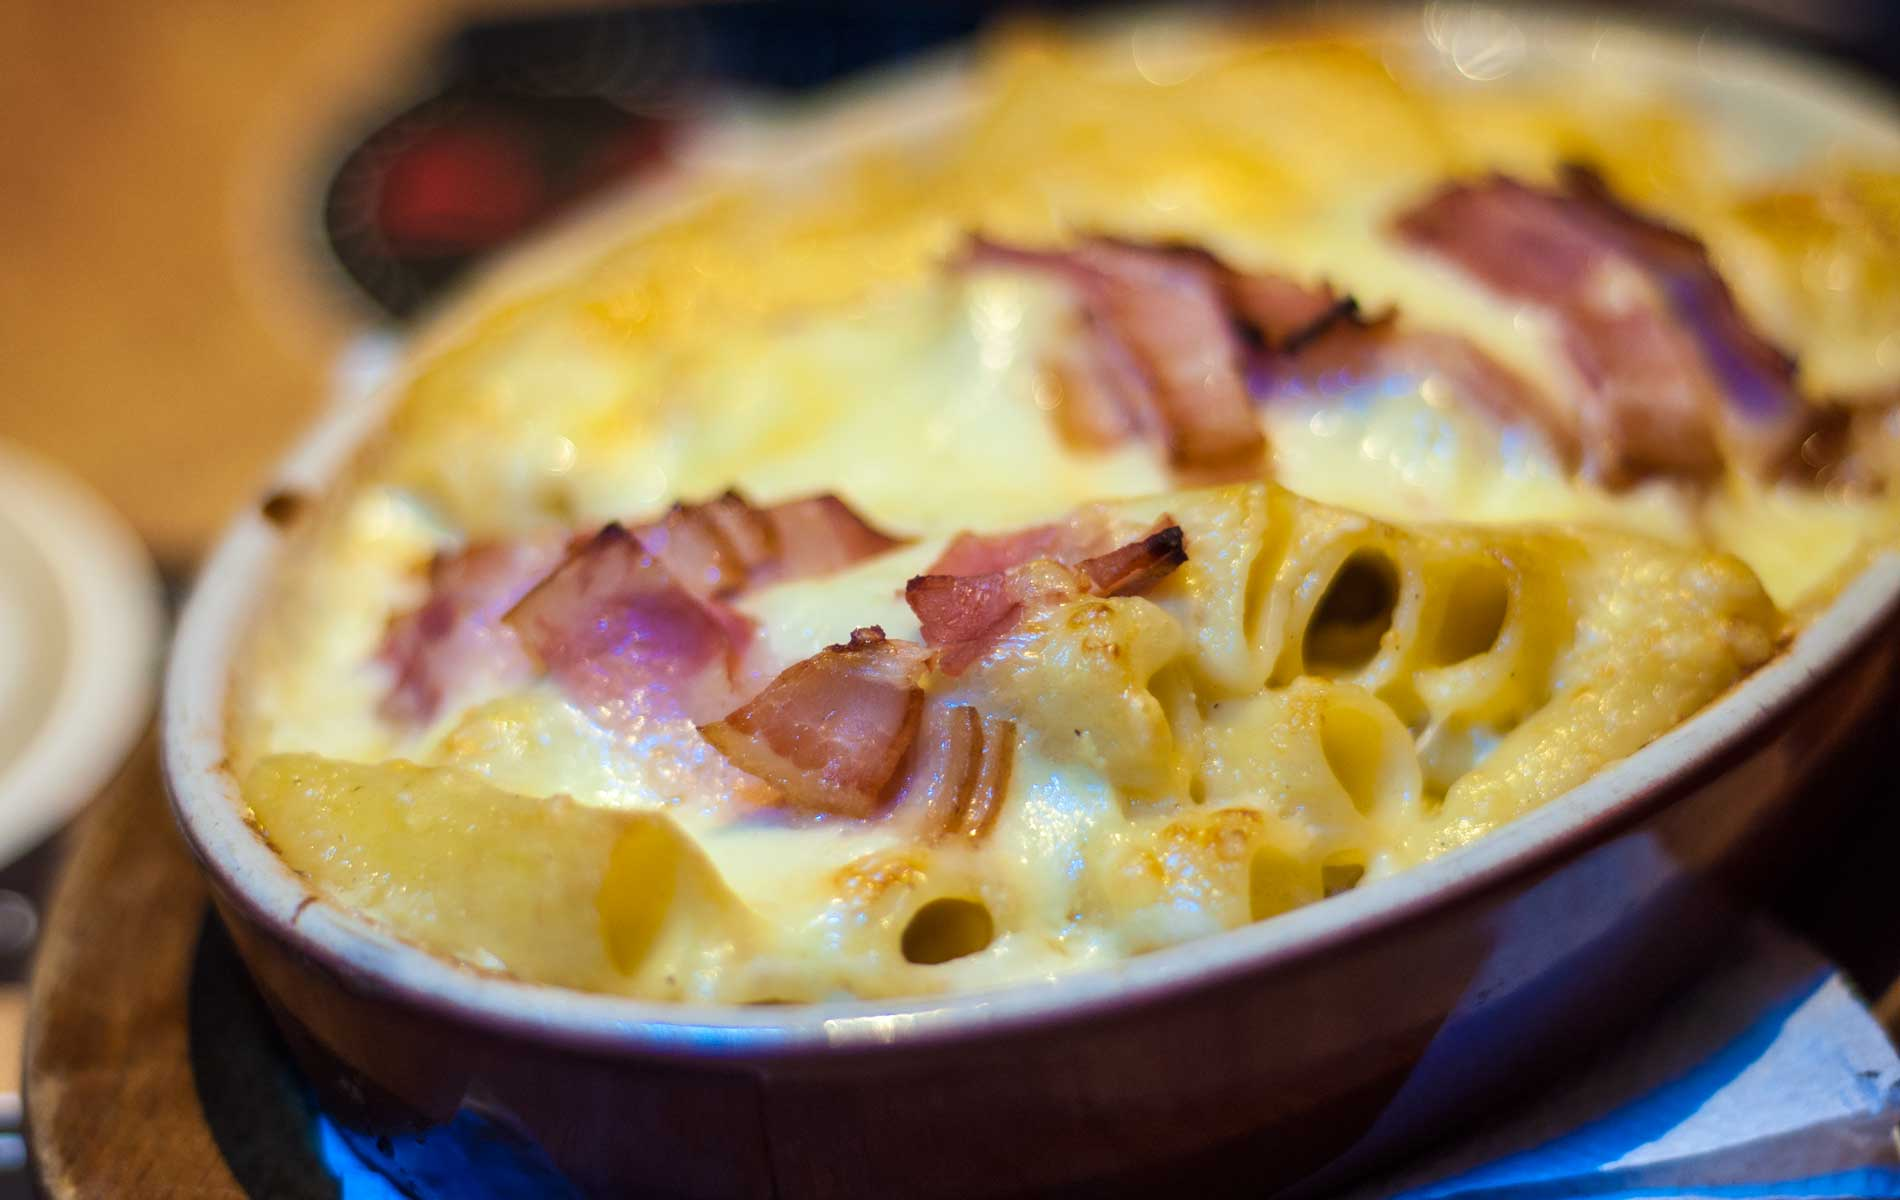 #riggatoni, #pasta, #willyspasta, #cheese, #foodporn, #delicious, #bacon, #willysplace, #willysplacetobe